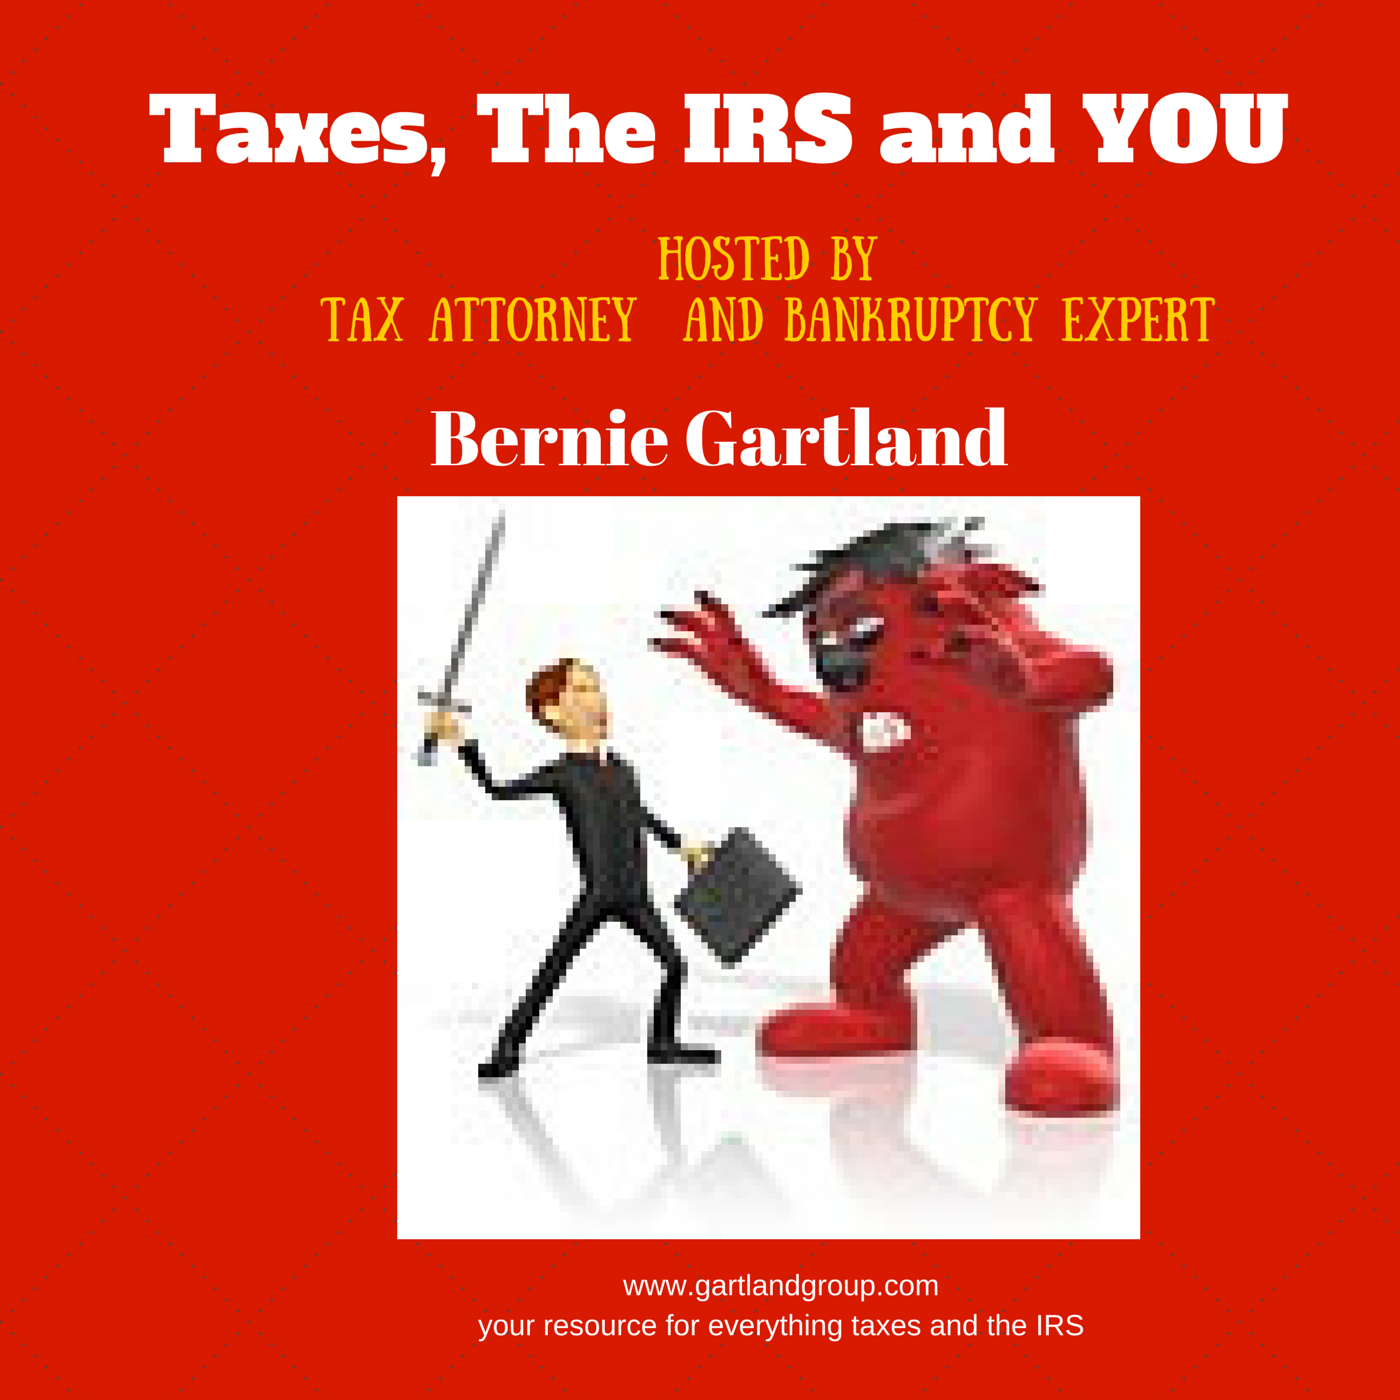 Taxes, The IRS and You